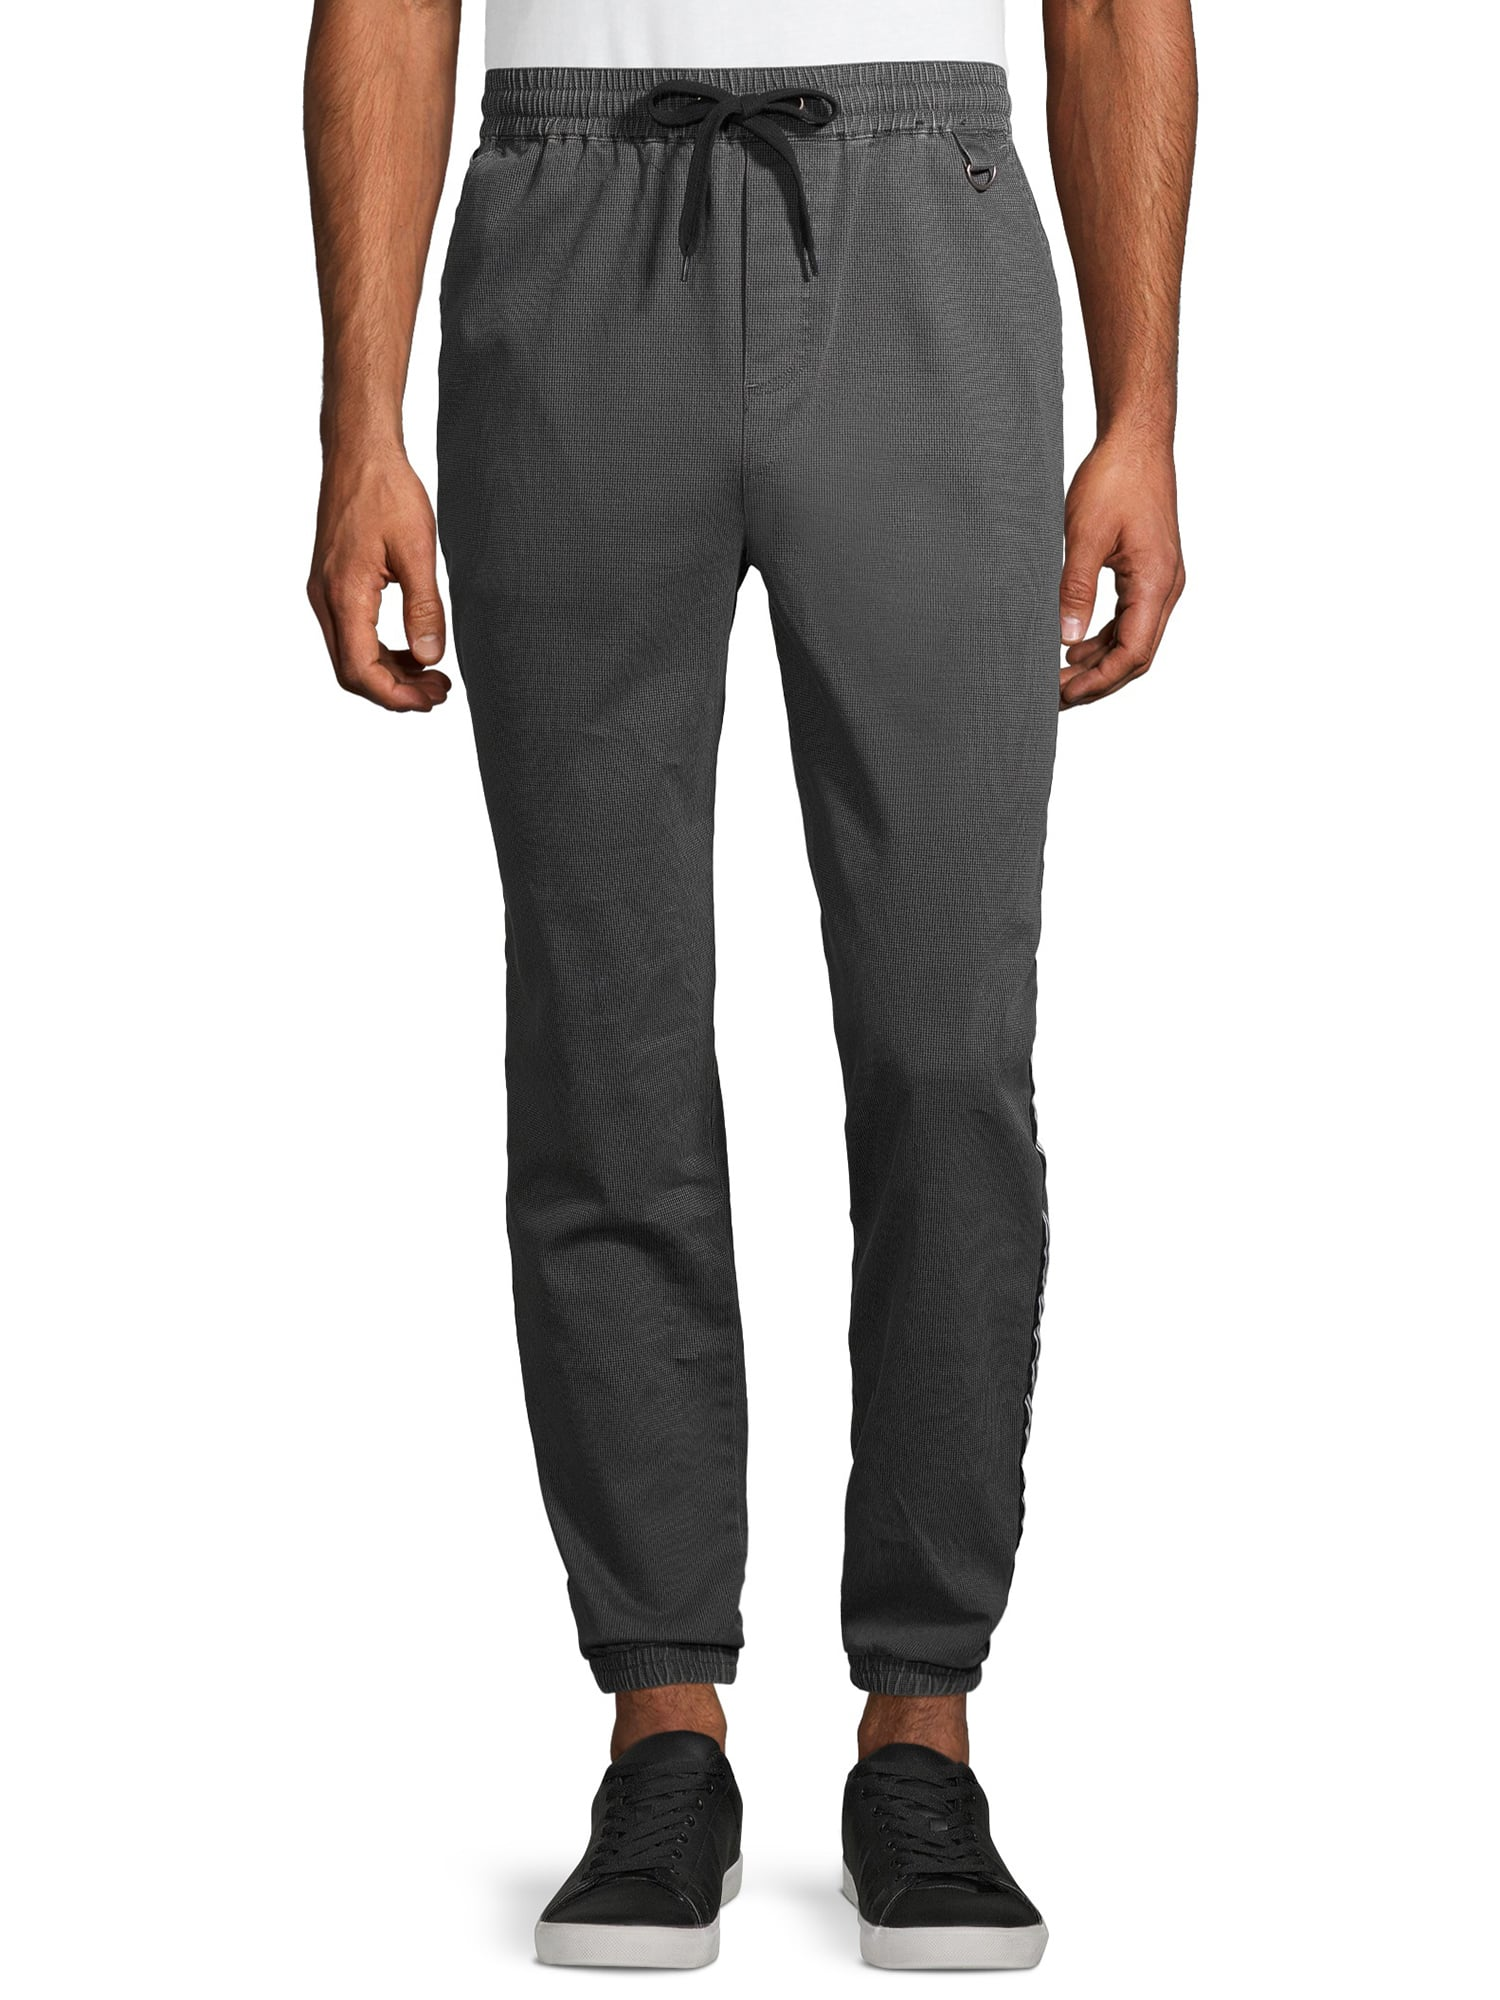 Walmart Men's Apparel: Micro Twill Jogger Pants $8, Parks & Recreation Graphic T-Shirt $4, More + FS on $35+